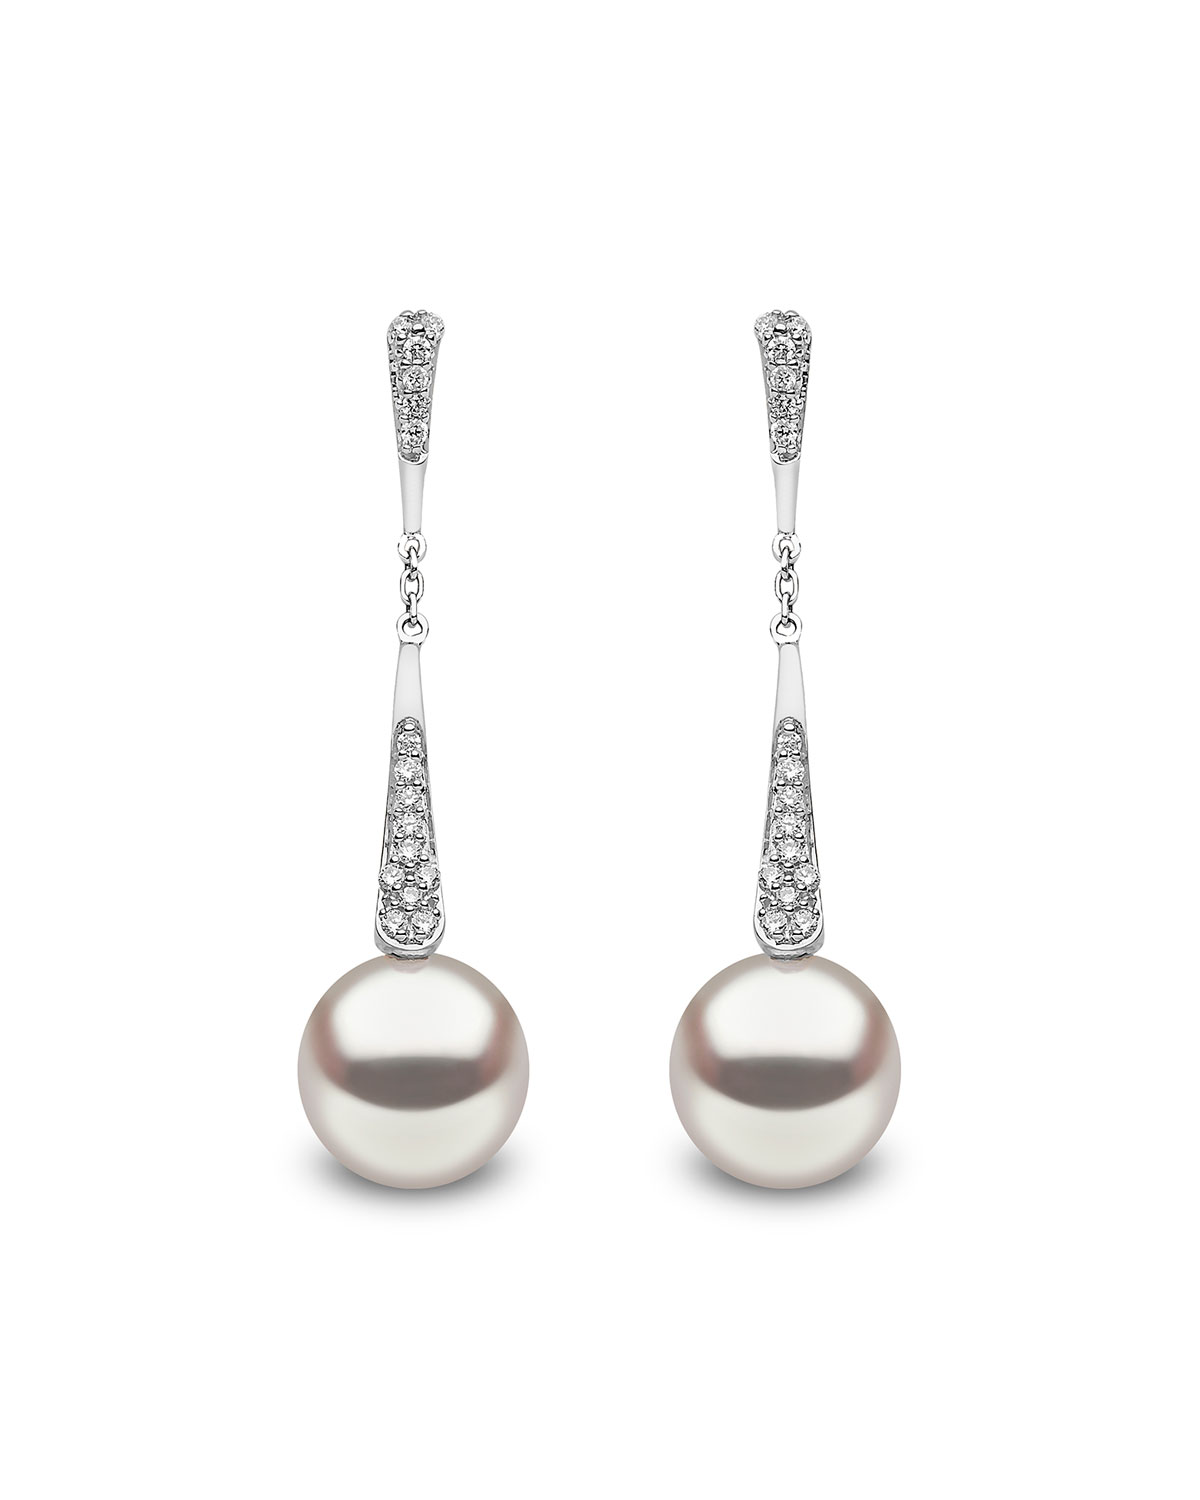 YOKO LONDON 18K White Gold Pearl & Diamond Linear Drop Earrings